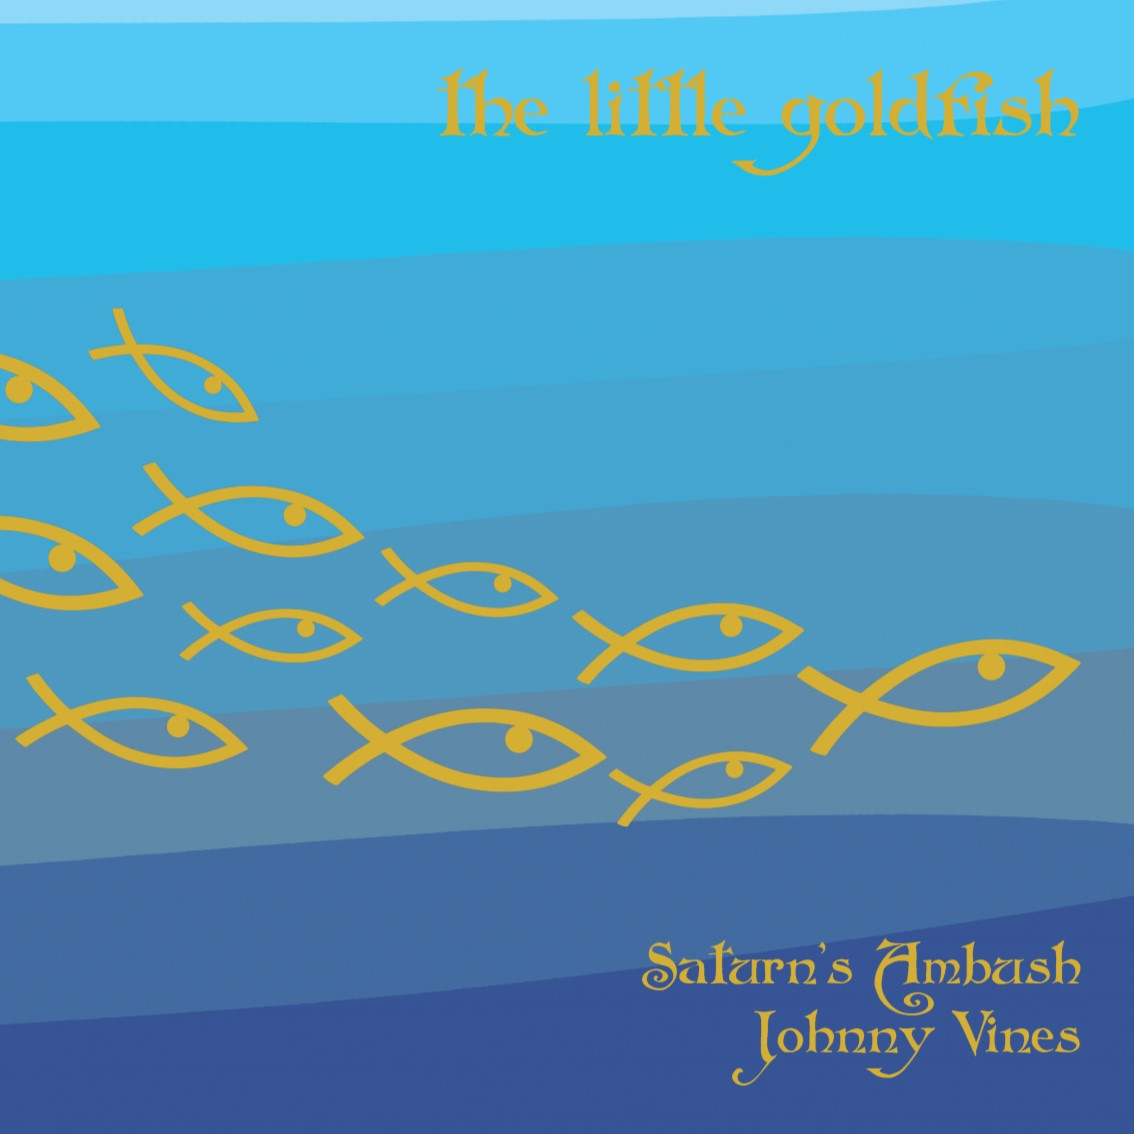 the little goldfish